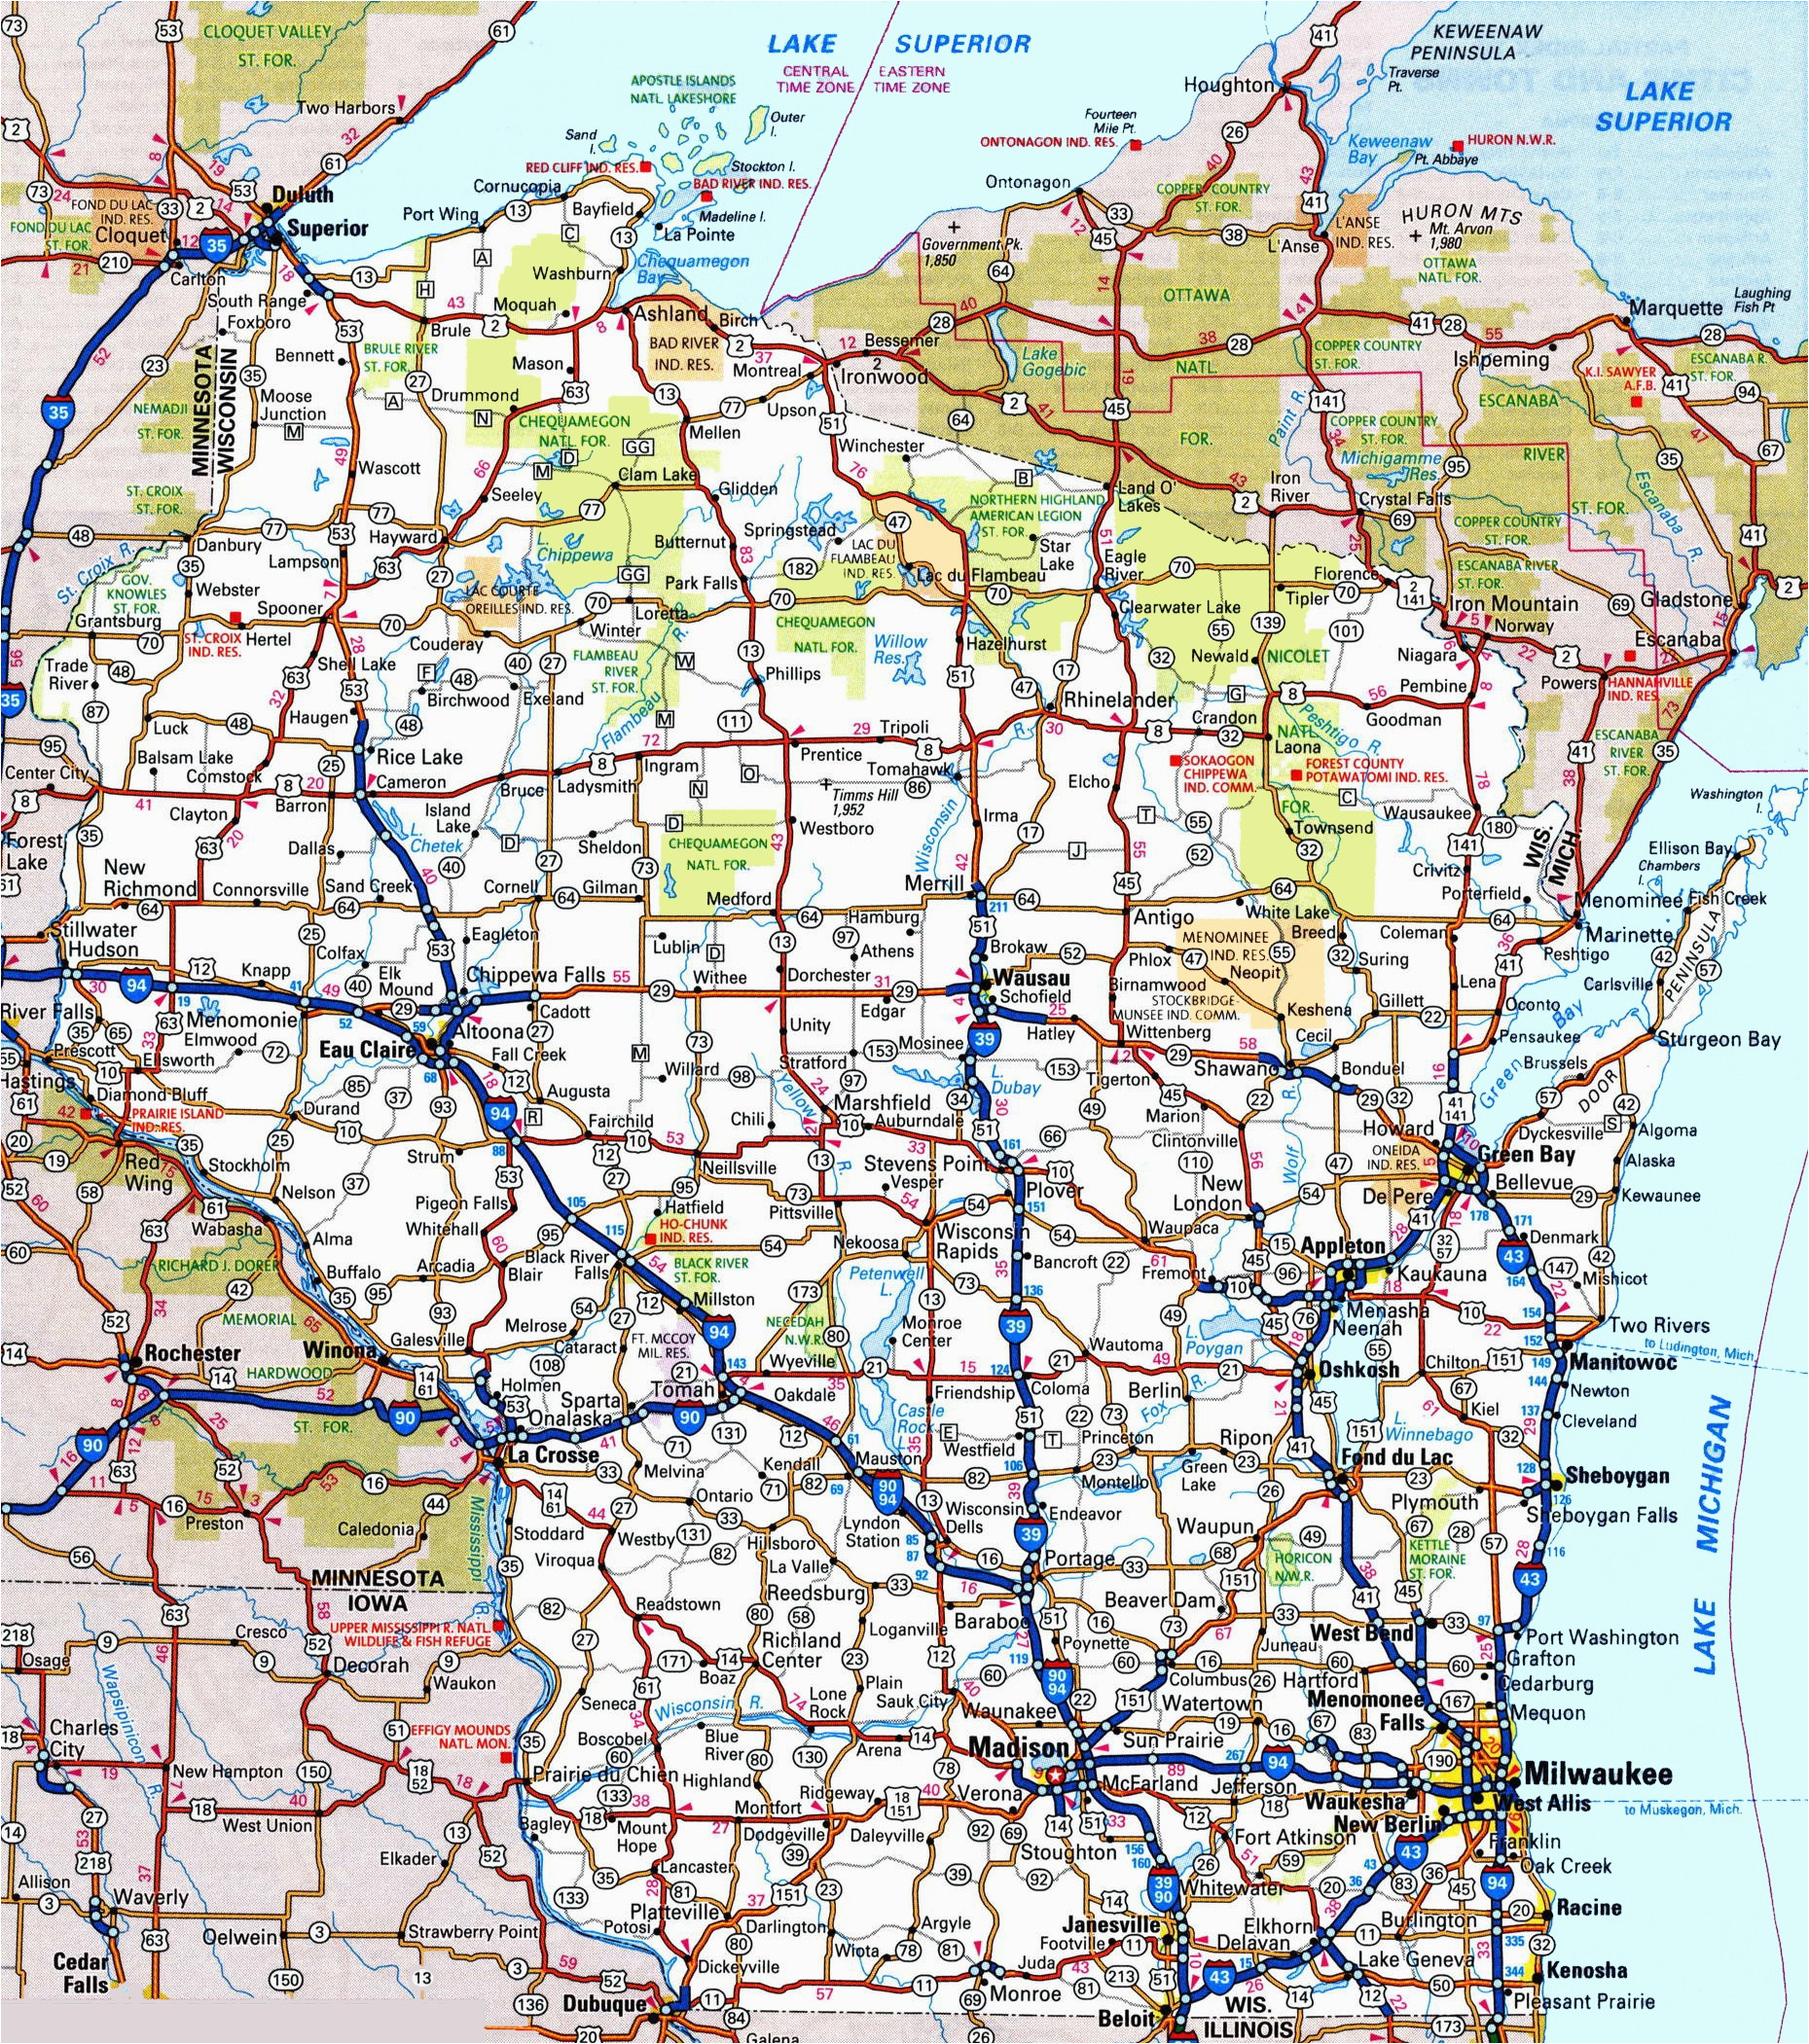 Highway Map Of Minnesota and Wisconsin | secretmuseum